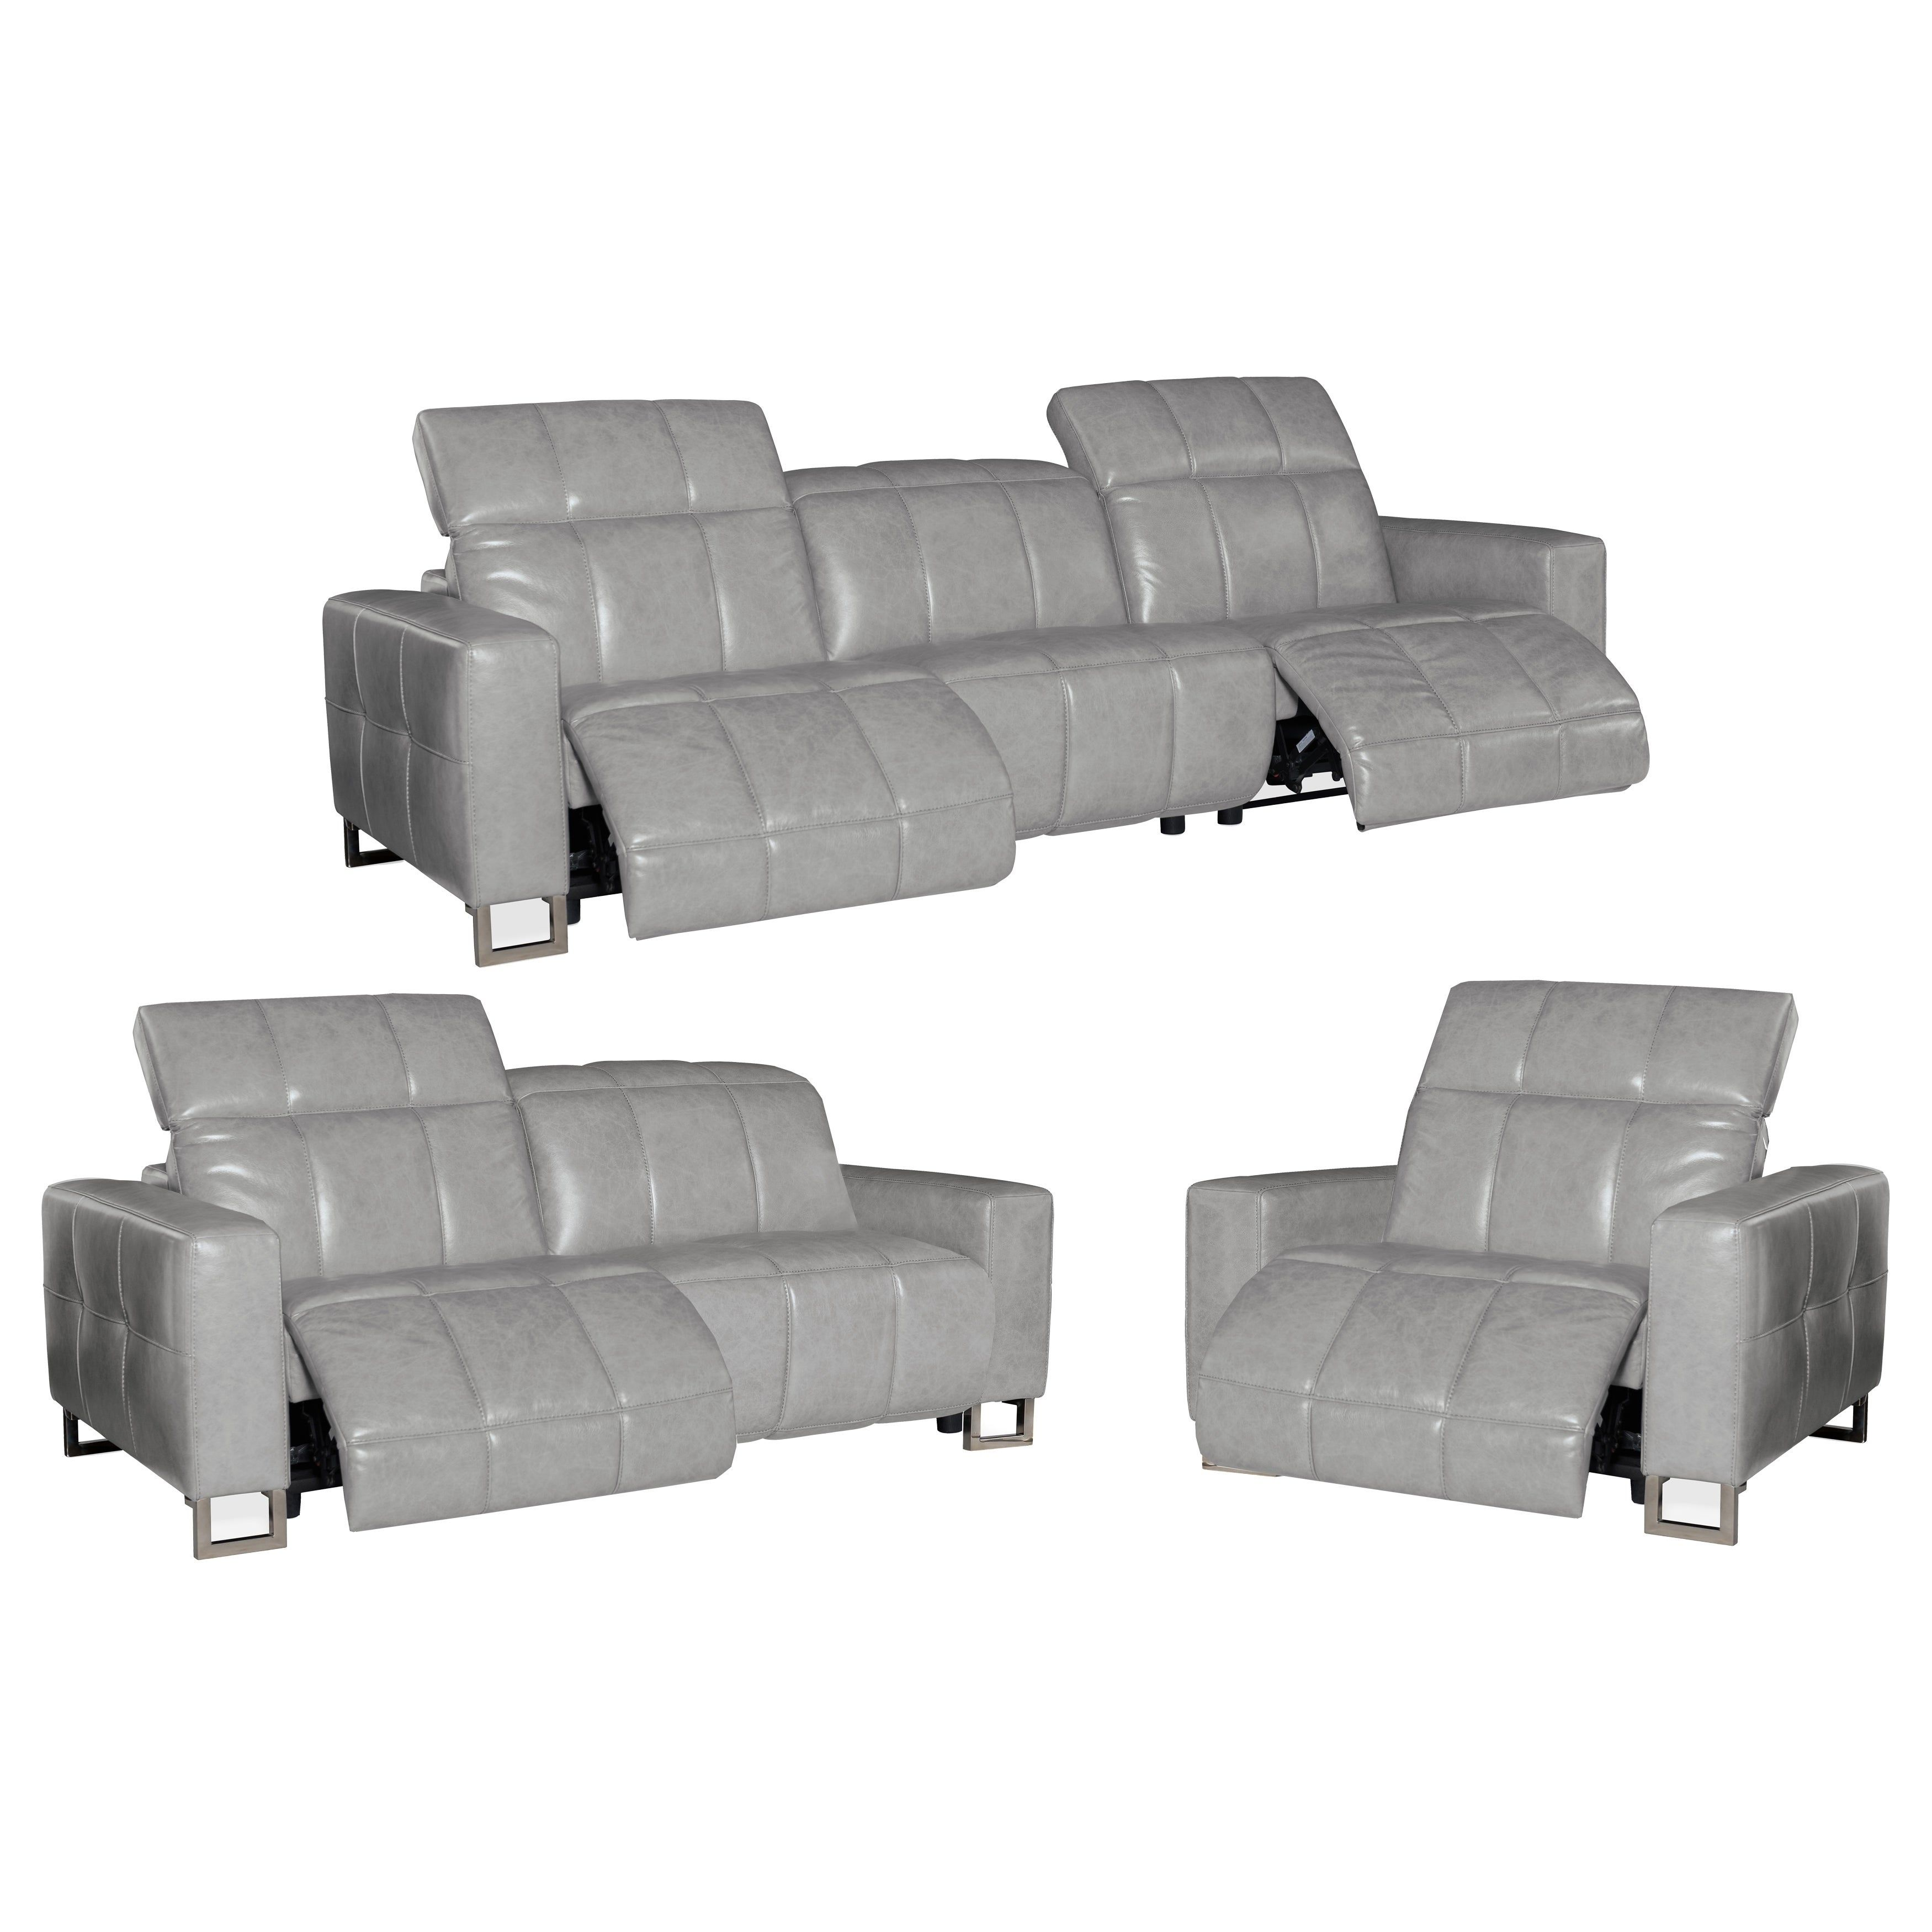 Prime Bombay Grey Top Grain Leather Power Reclining Sofa Loveseat Ocoug Best Dining Table And Chair Ideas Images Ocougorg